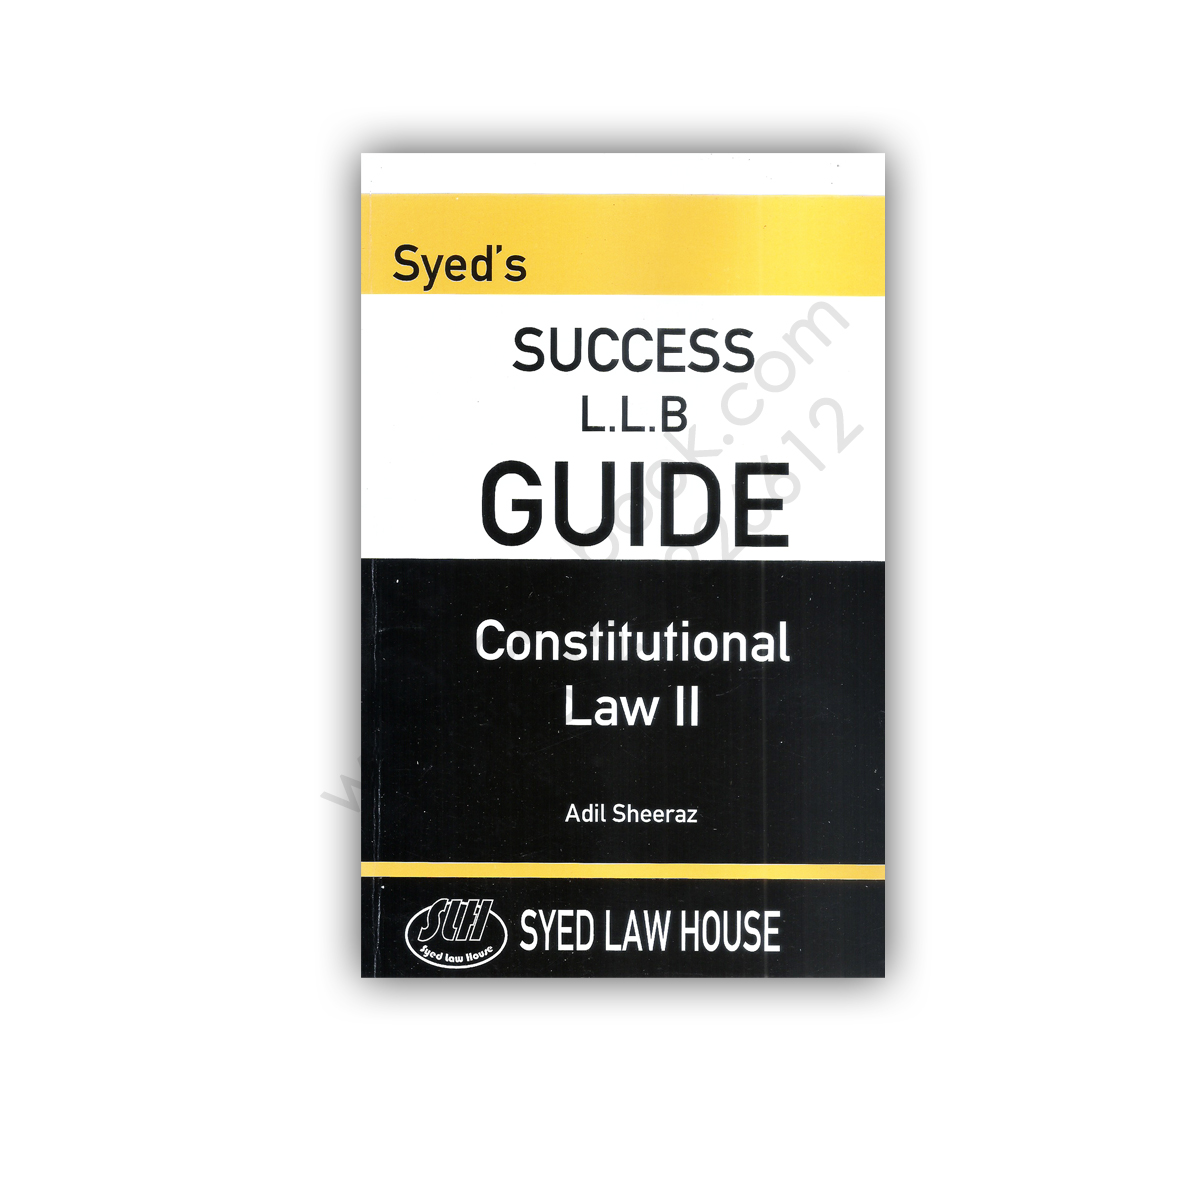 success llb guide contitutional law ii adil sheeraz - syed law house